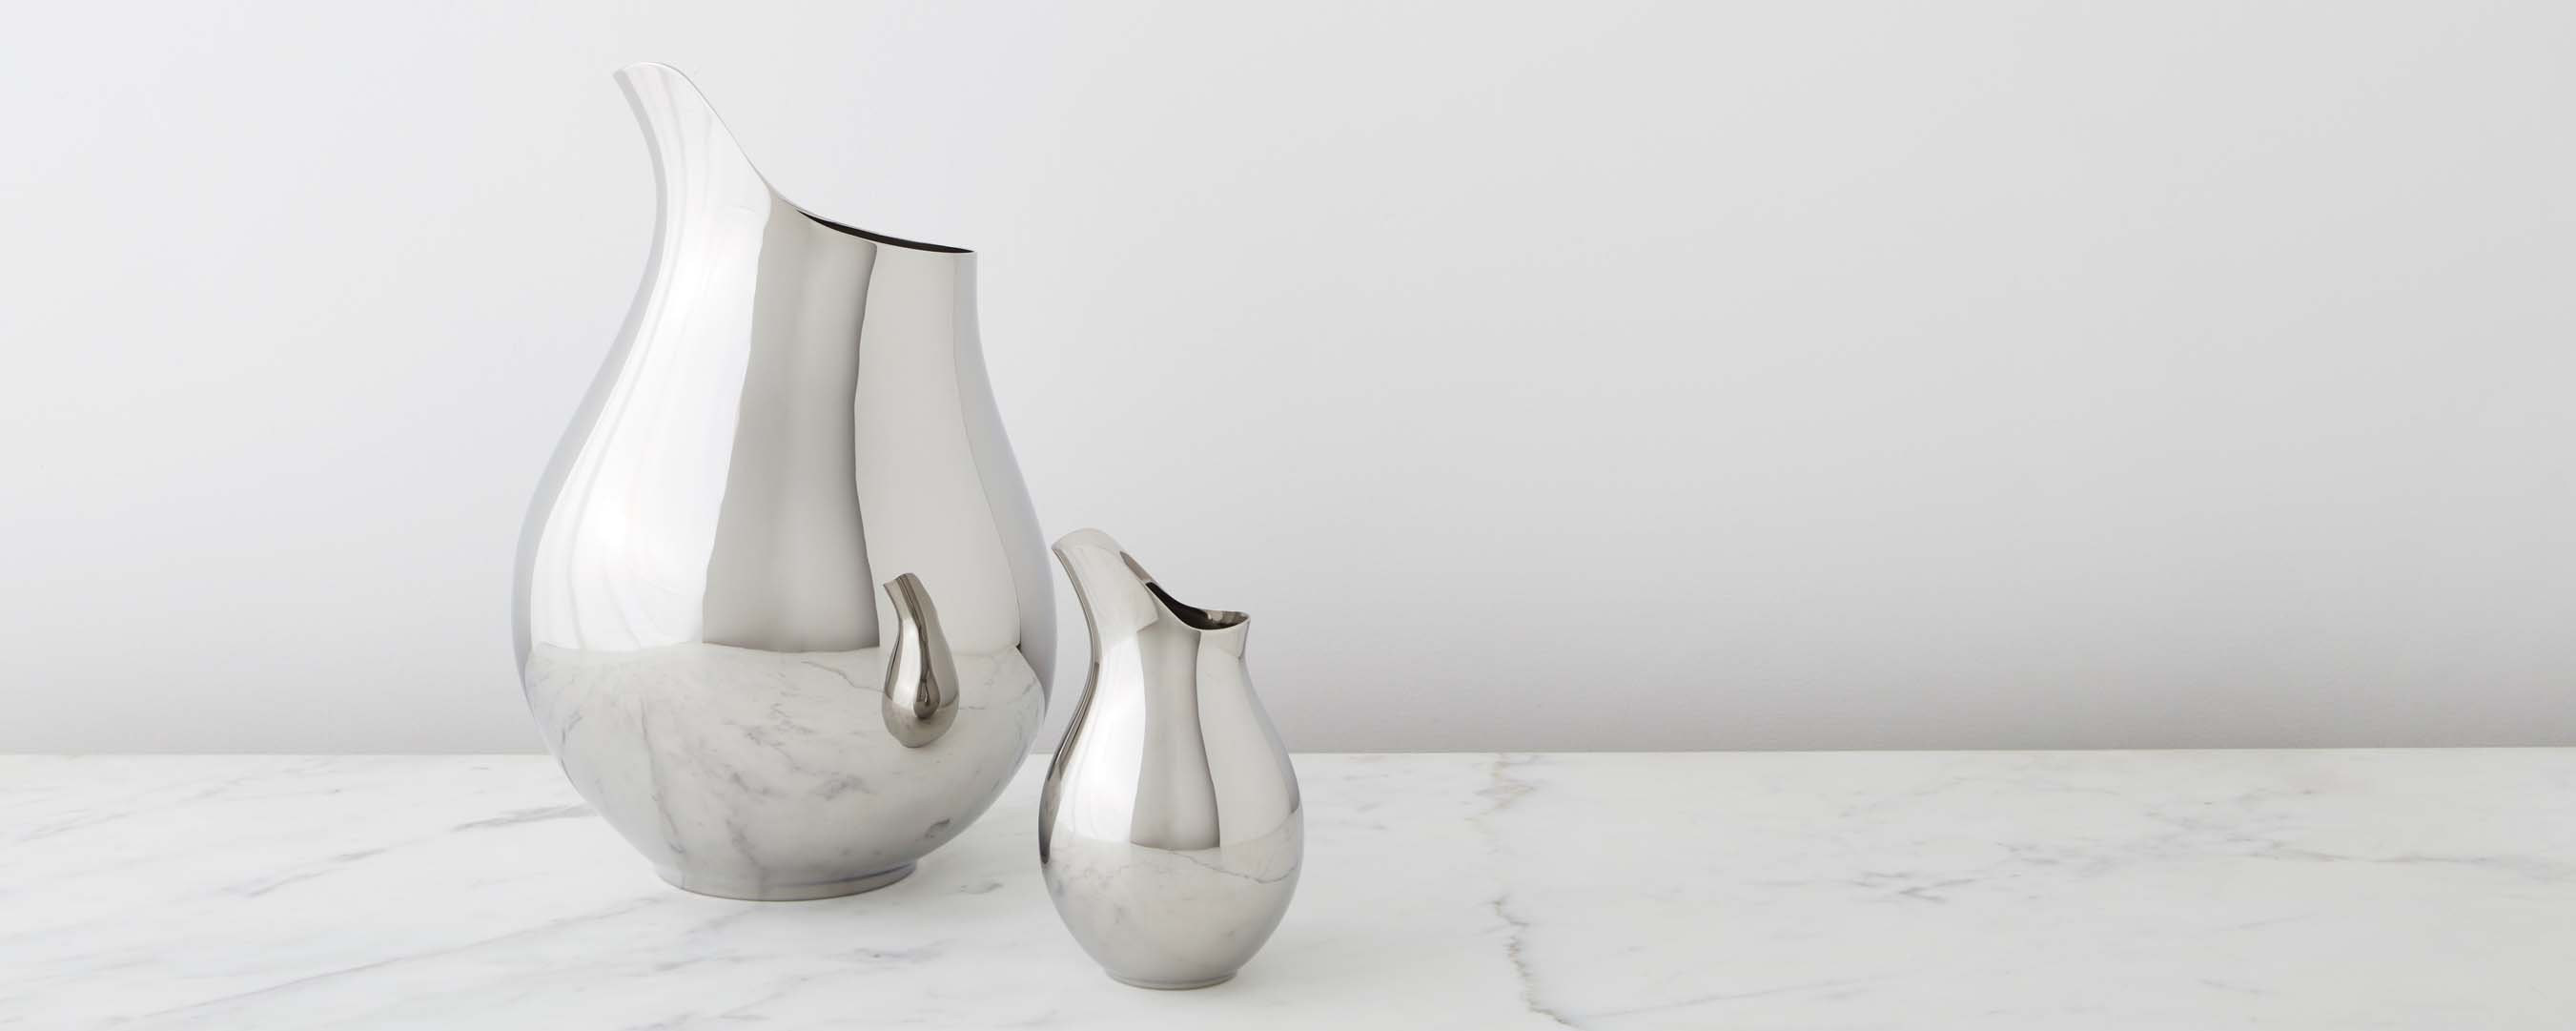 georg jensen living vase of mama vase by ilse crawford for georg jensen homenature with mama vase by ilse crawford for georg jensen